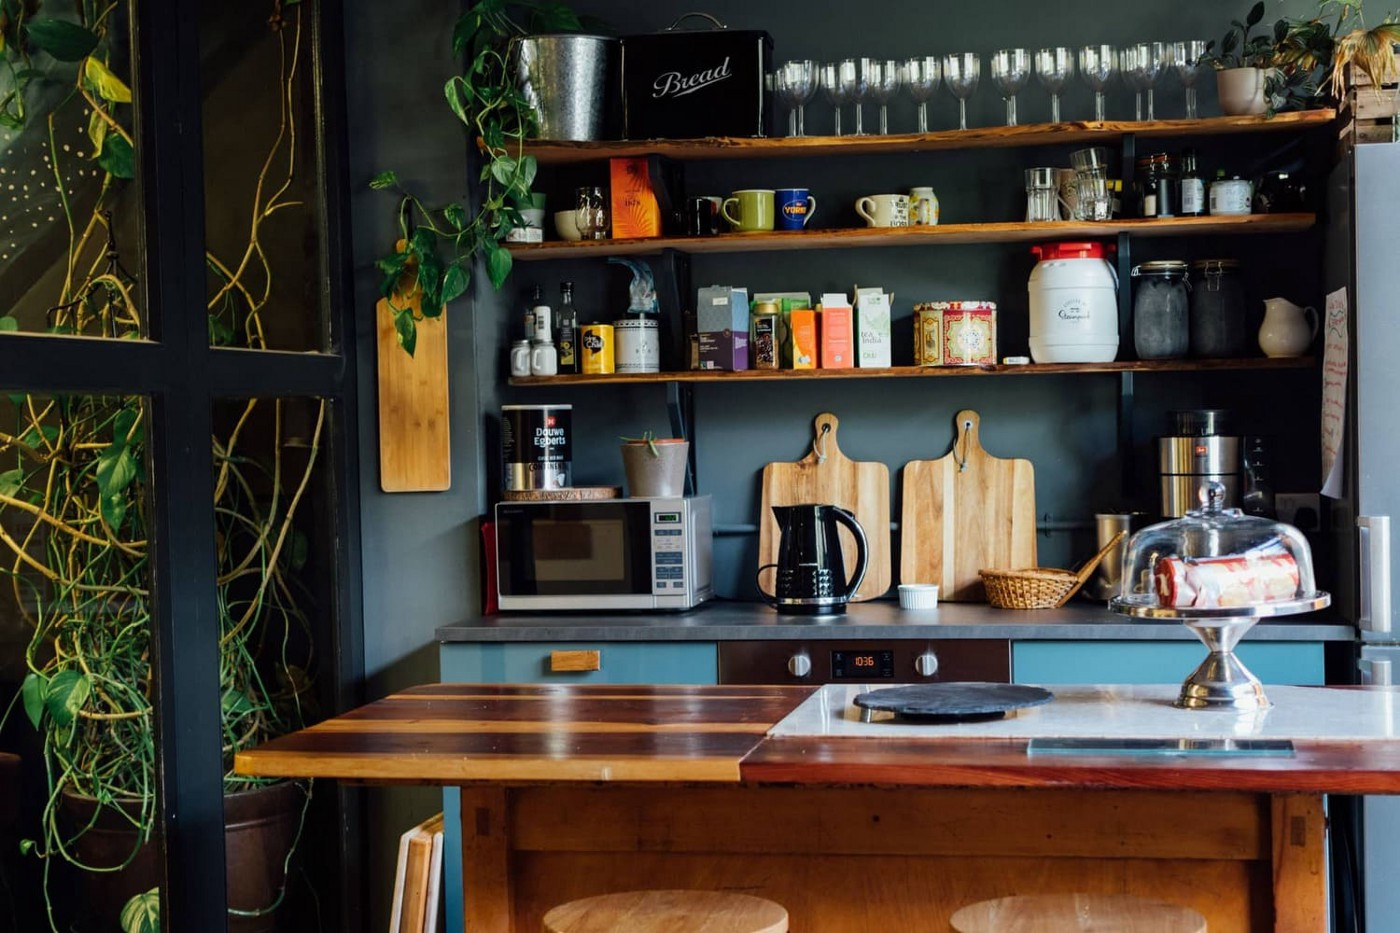 Crowded kitchen counter and shelves